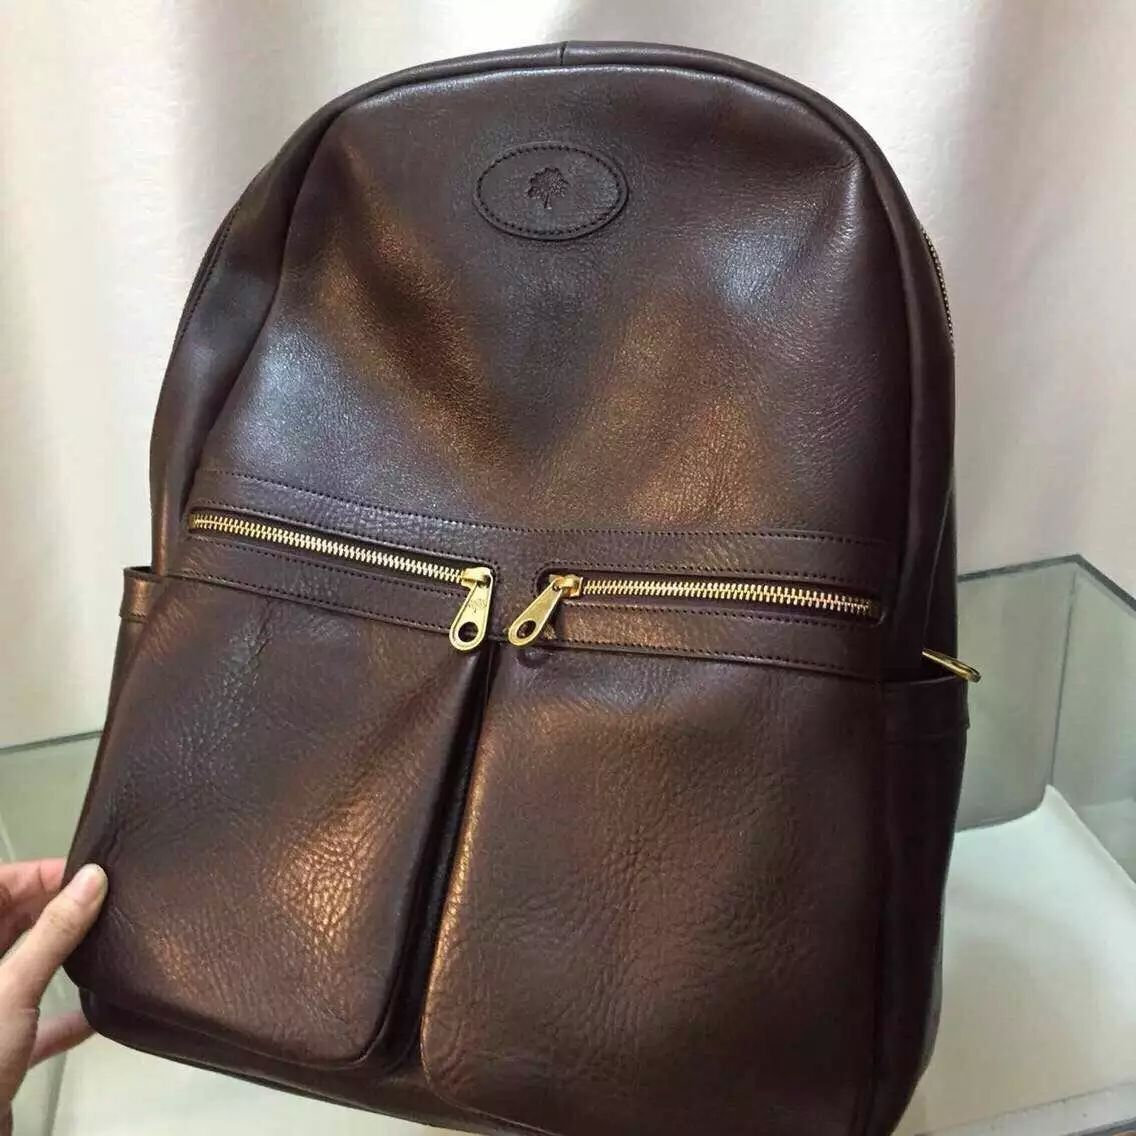 MULBERRY backpack  H44XW35XD22CM BROWN BLACK